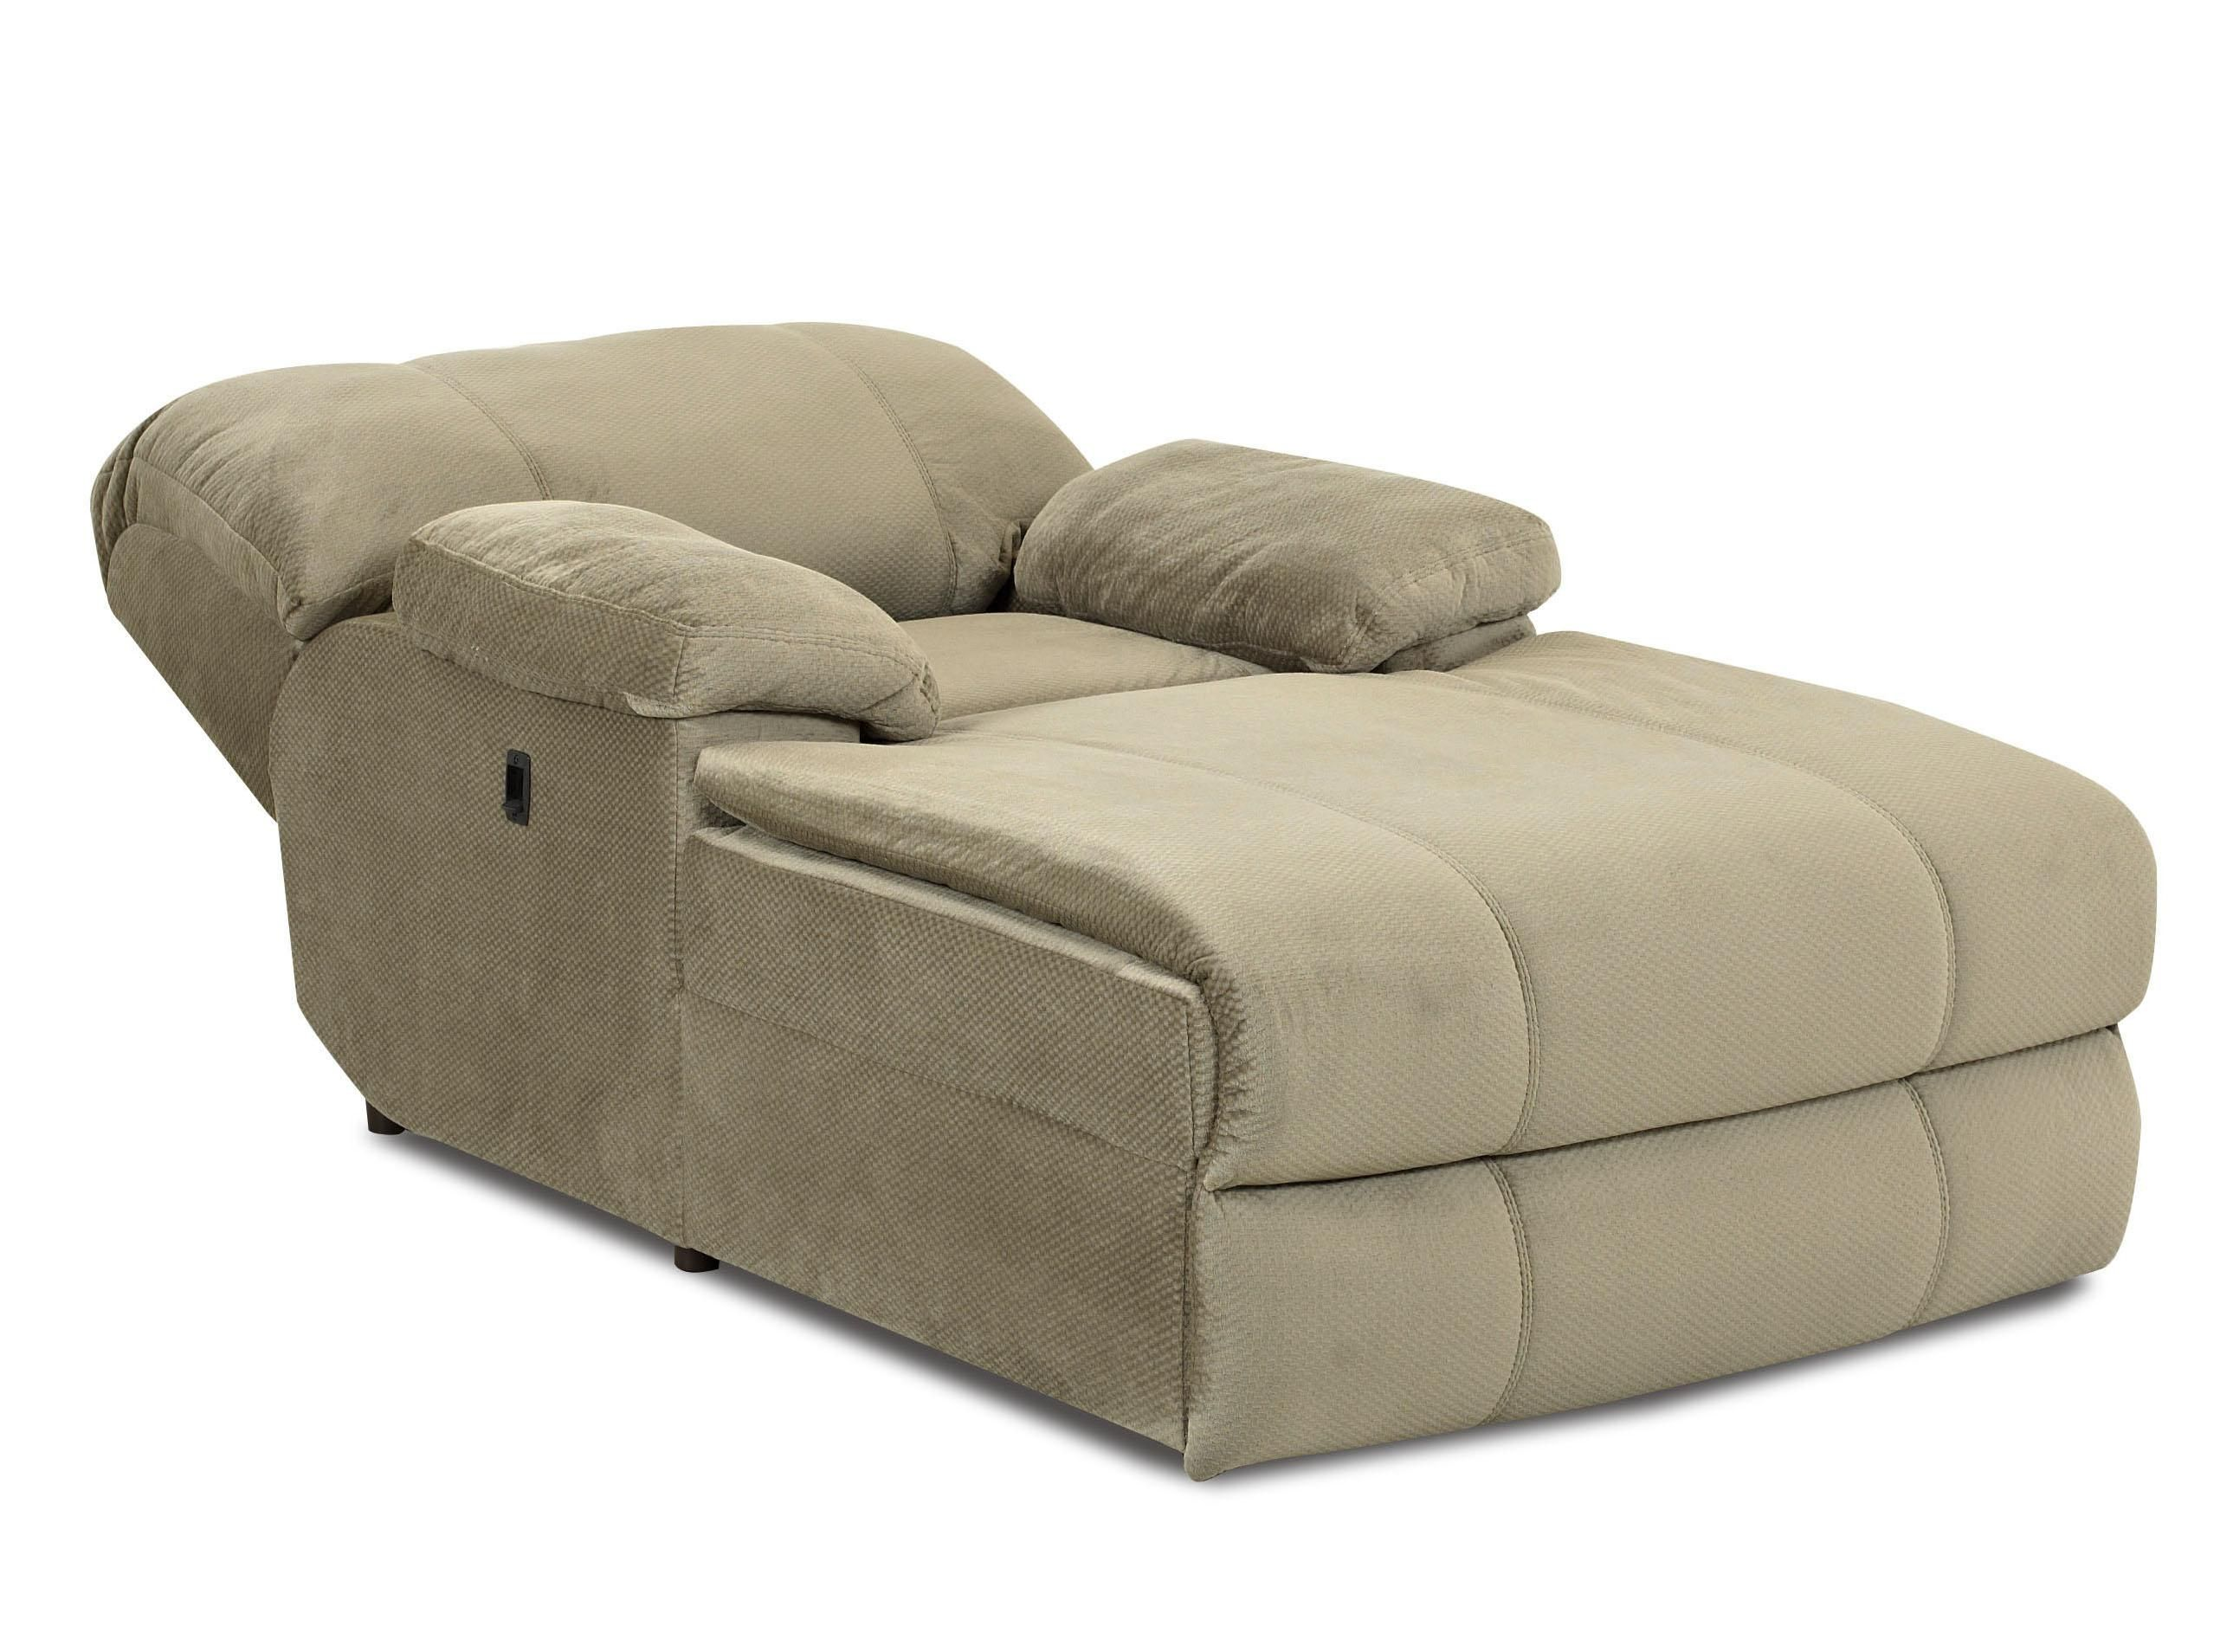 Attirant Indoor Oversized Chaise Lounge | Kensington Reclining Chaise Lounge